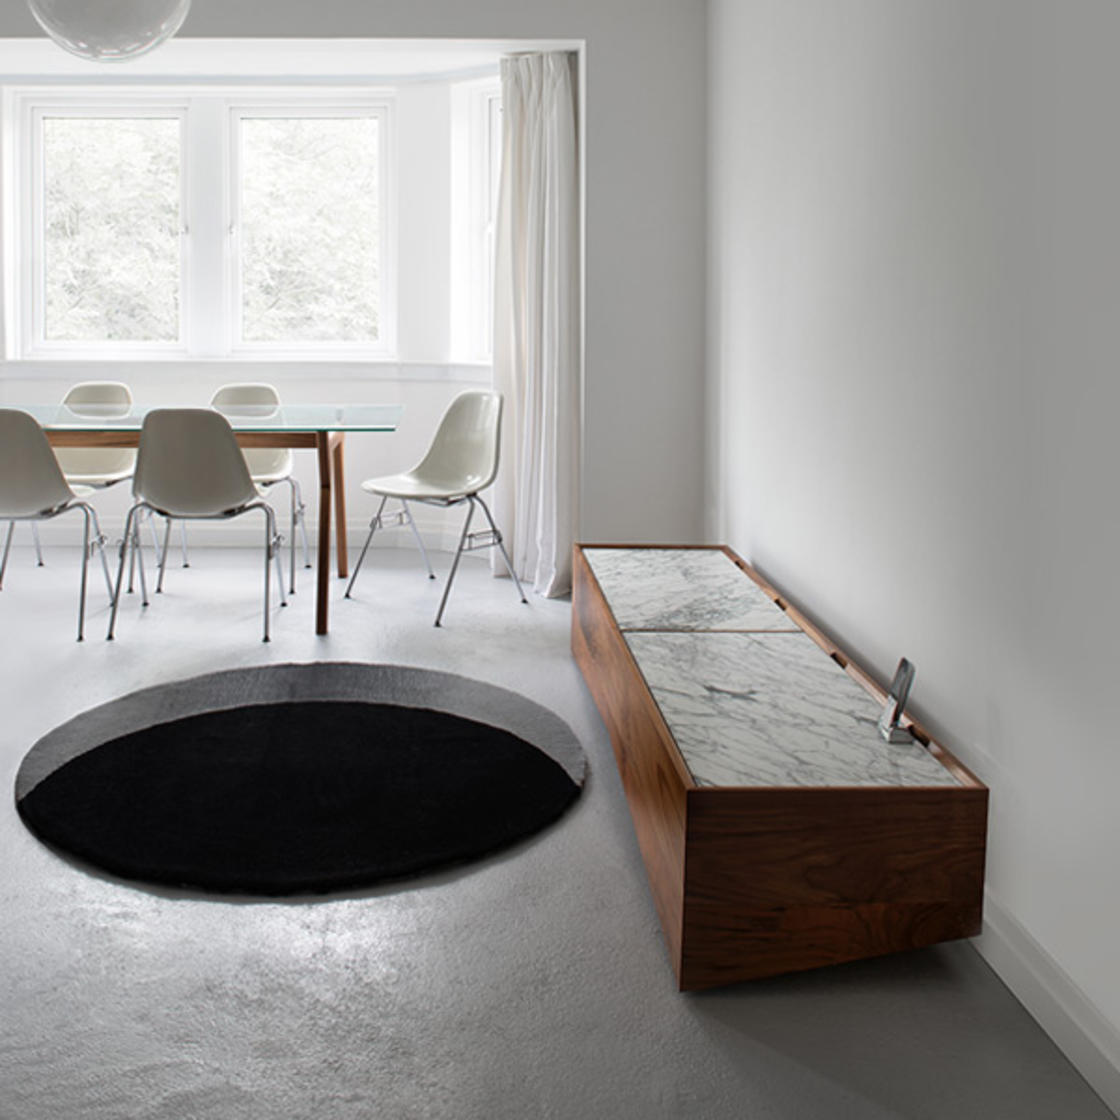 Simple and effective, this clever rug is an amazing optical illusion!